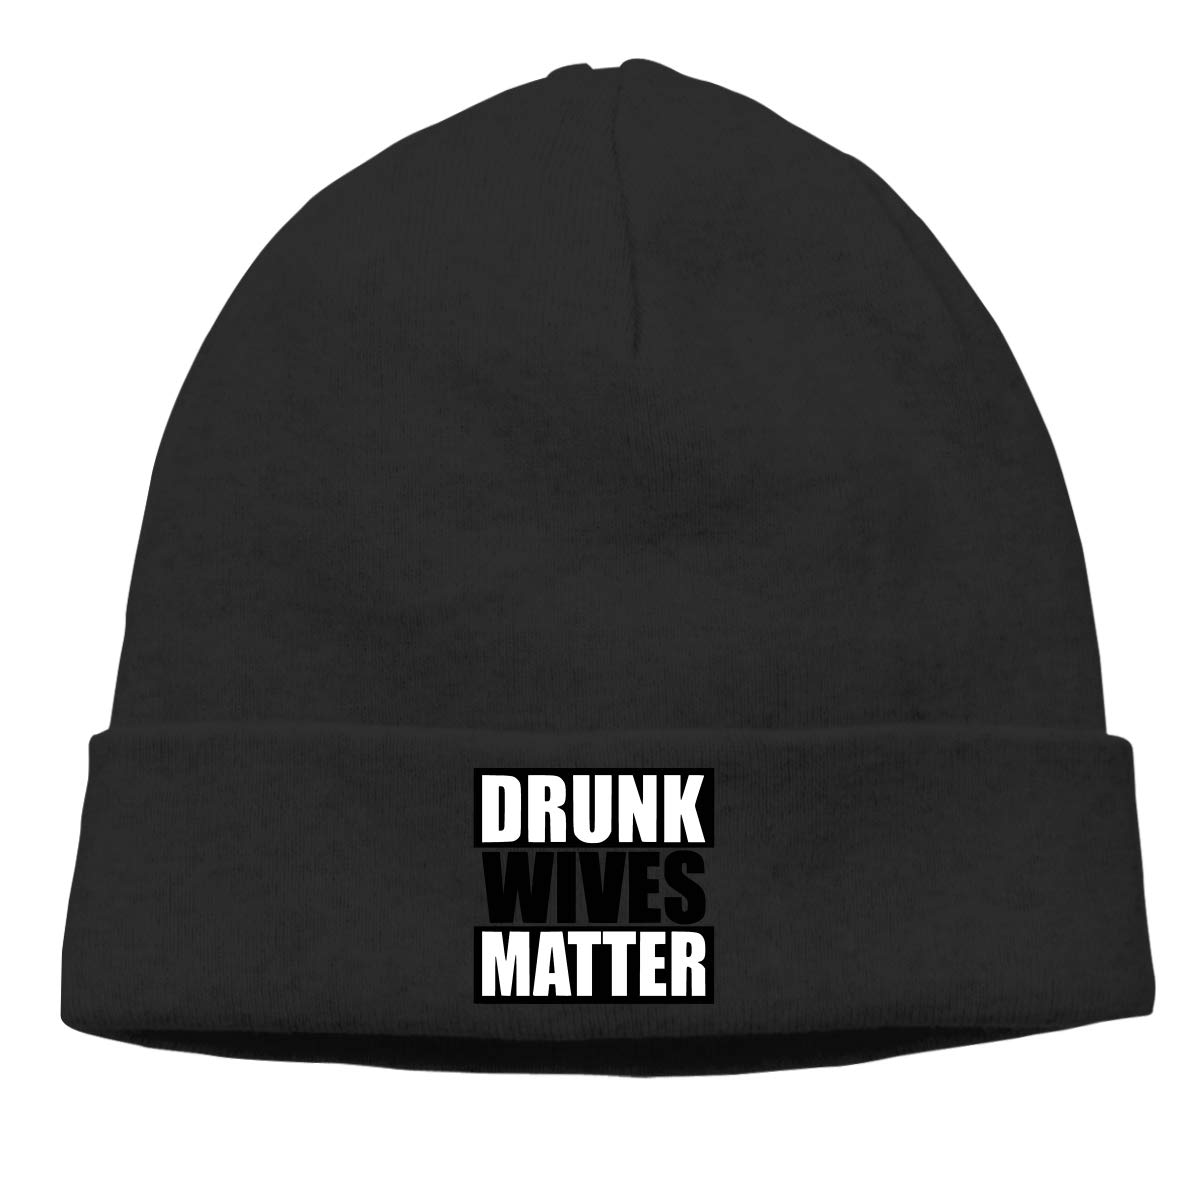 CgyOIUY-lop Beanie Hat Warm Hats Skull Cap Knitted Hat Drunk Wives Matter